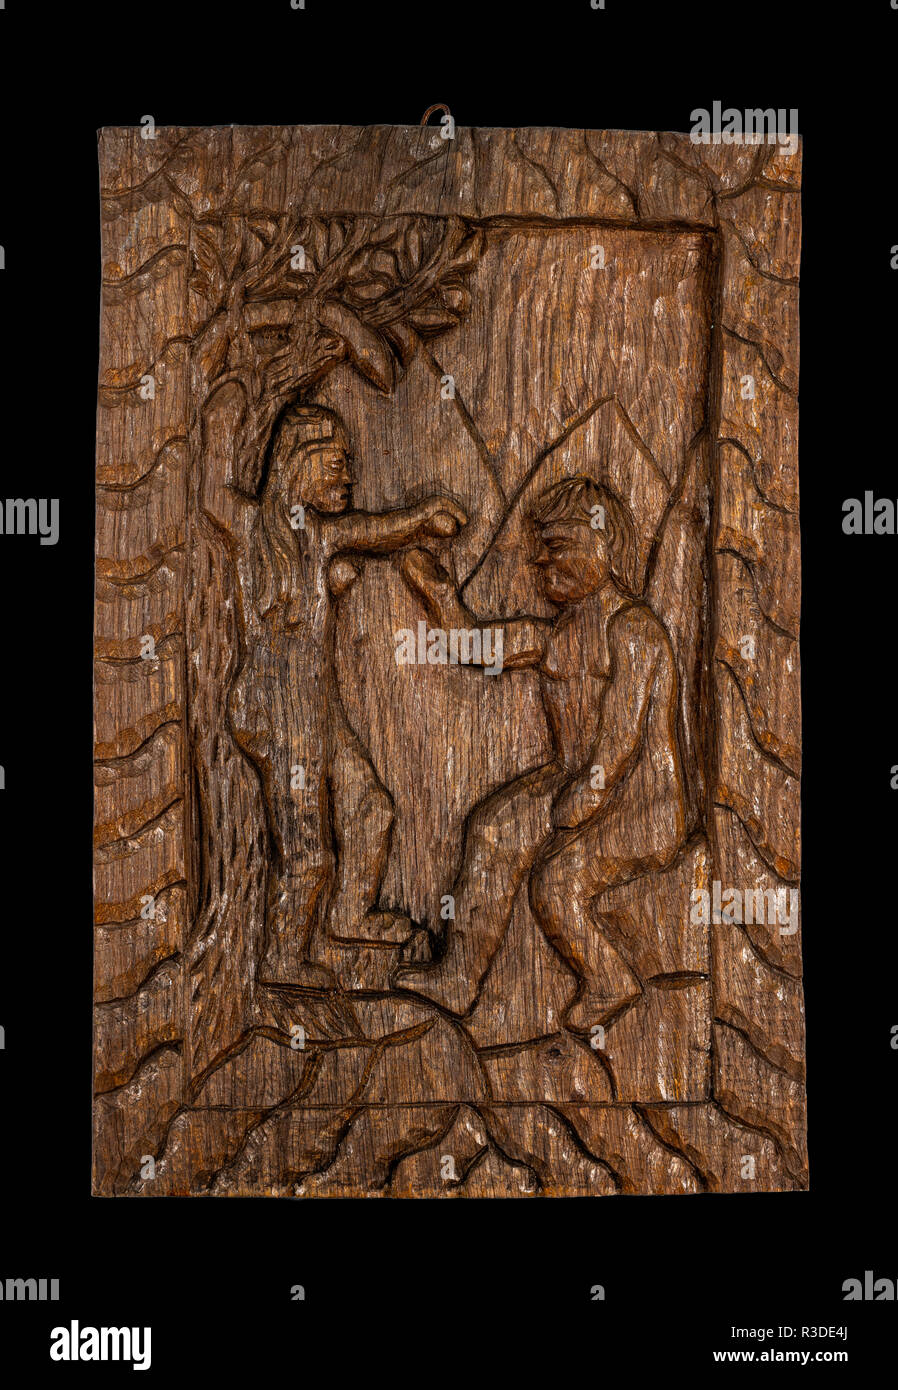 How To Do Relief Wood Carving